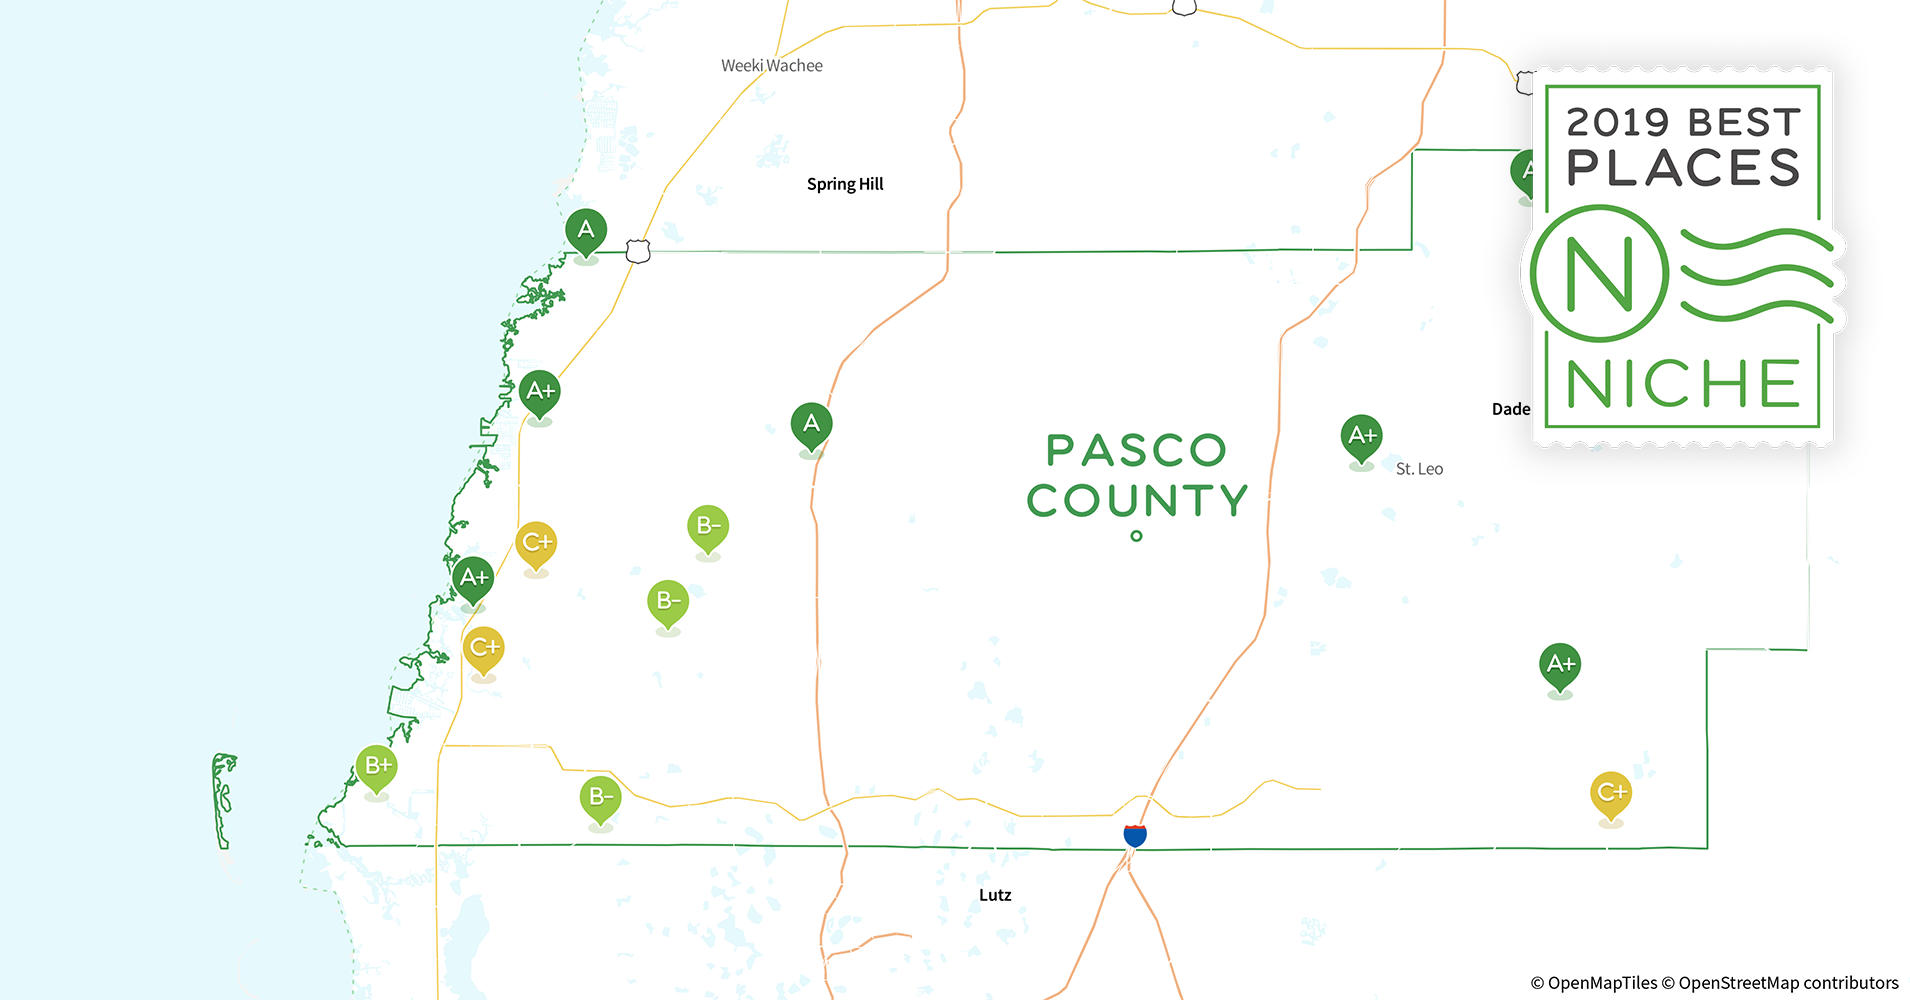 2019 Best Places to Live in Pasco County, FL - Niche Saint Leo Florida Map on bay pines florida map, pensacola florida map, winter haven florida map, quincy florida map, land o lakes florida map, pembroke pines florida map, tallahassee florida map, dunedin florida map, gainesville florida map, largo florida map, west palm beach florida map, miami florida map, port orange florida map, temple terrace florida map, new port richey florida map, fort white florida map, florida fl map, crystal beach florida map, kathleen florida map, raiford florida map,